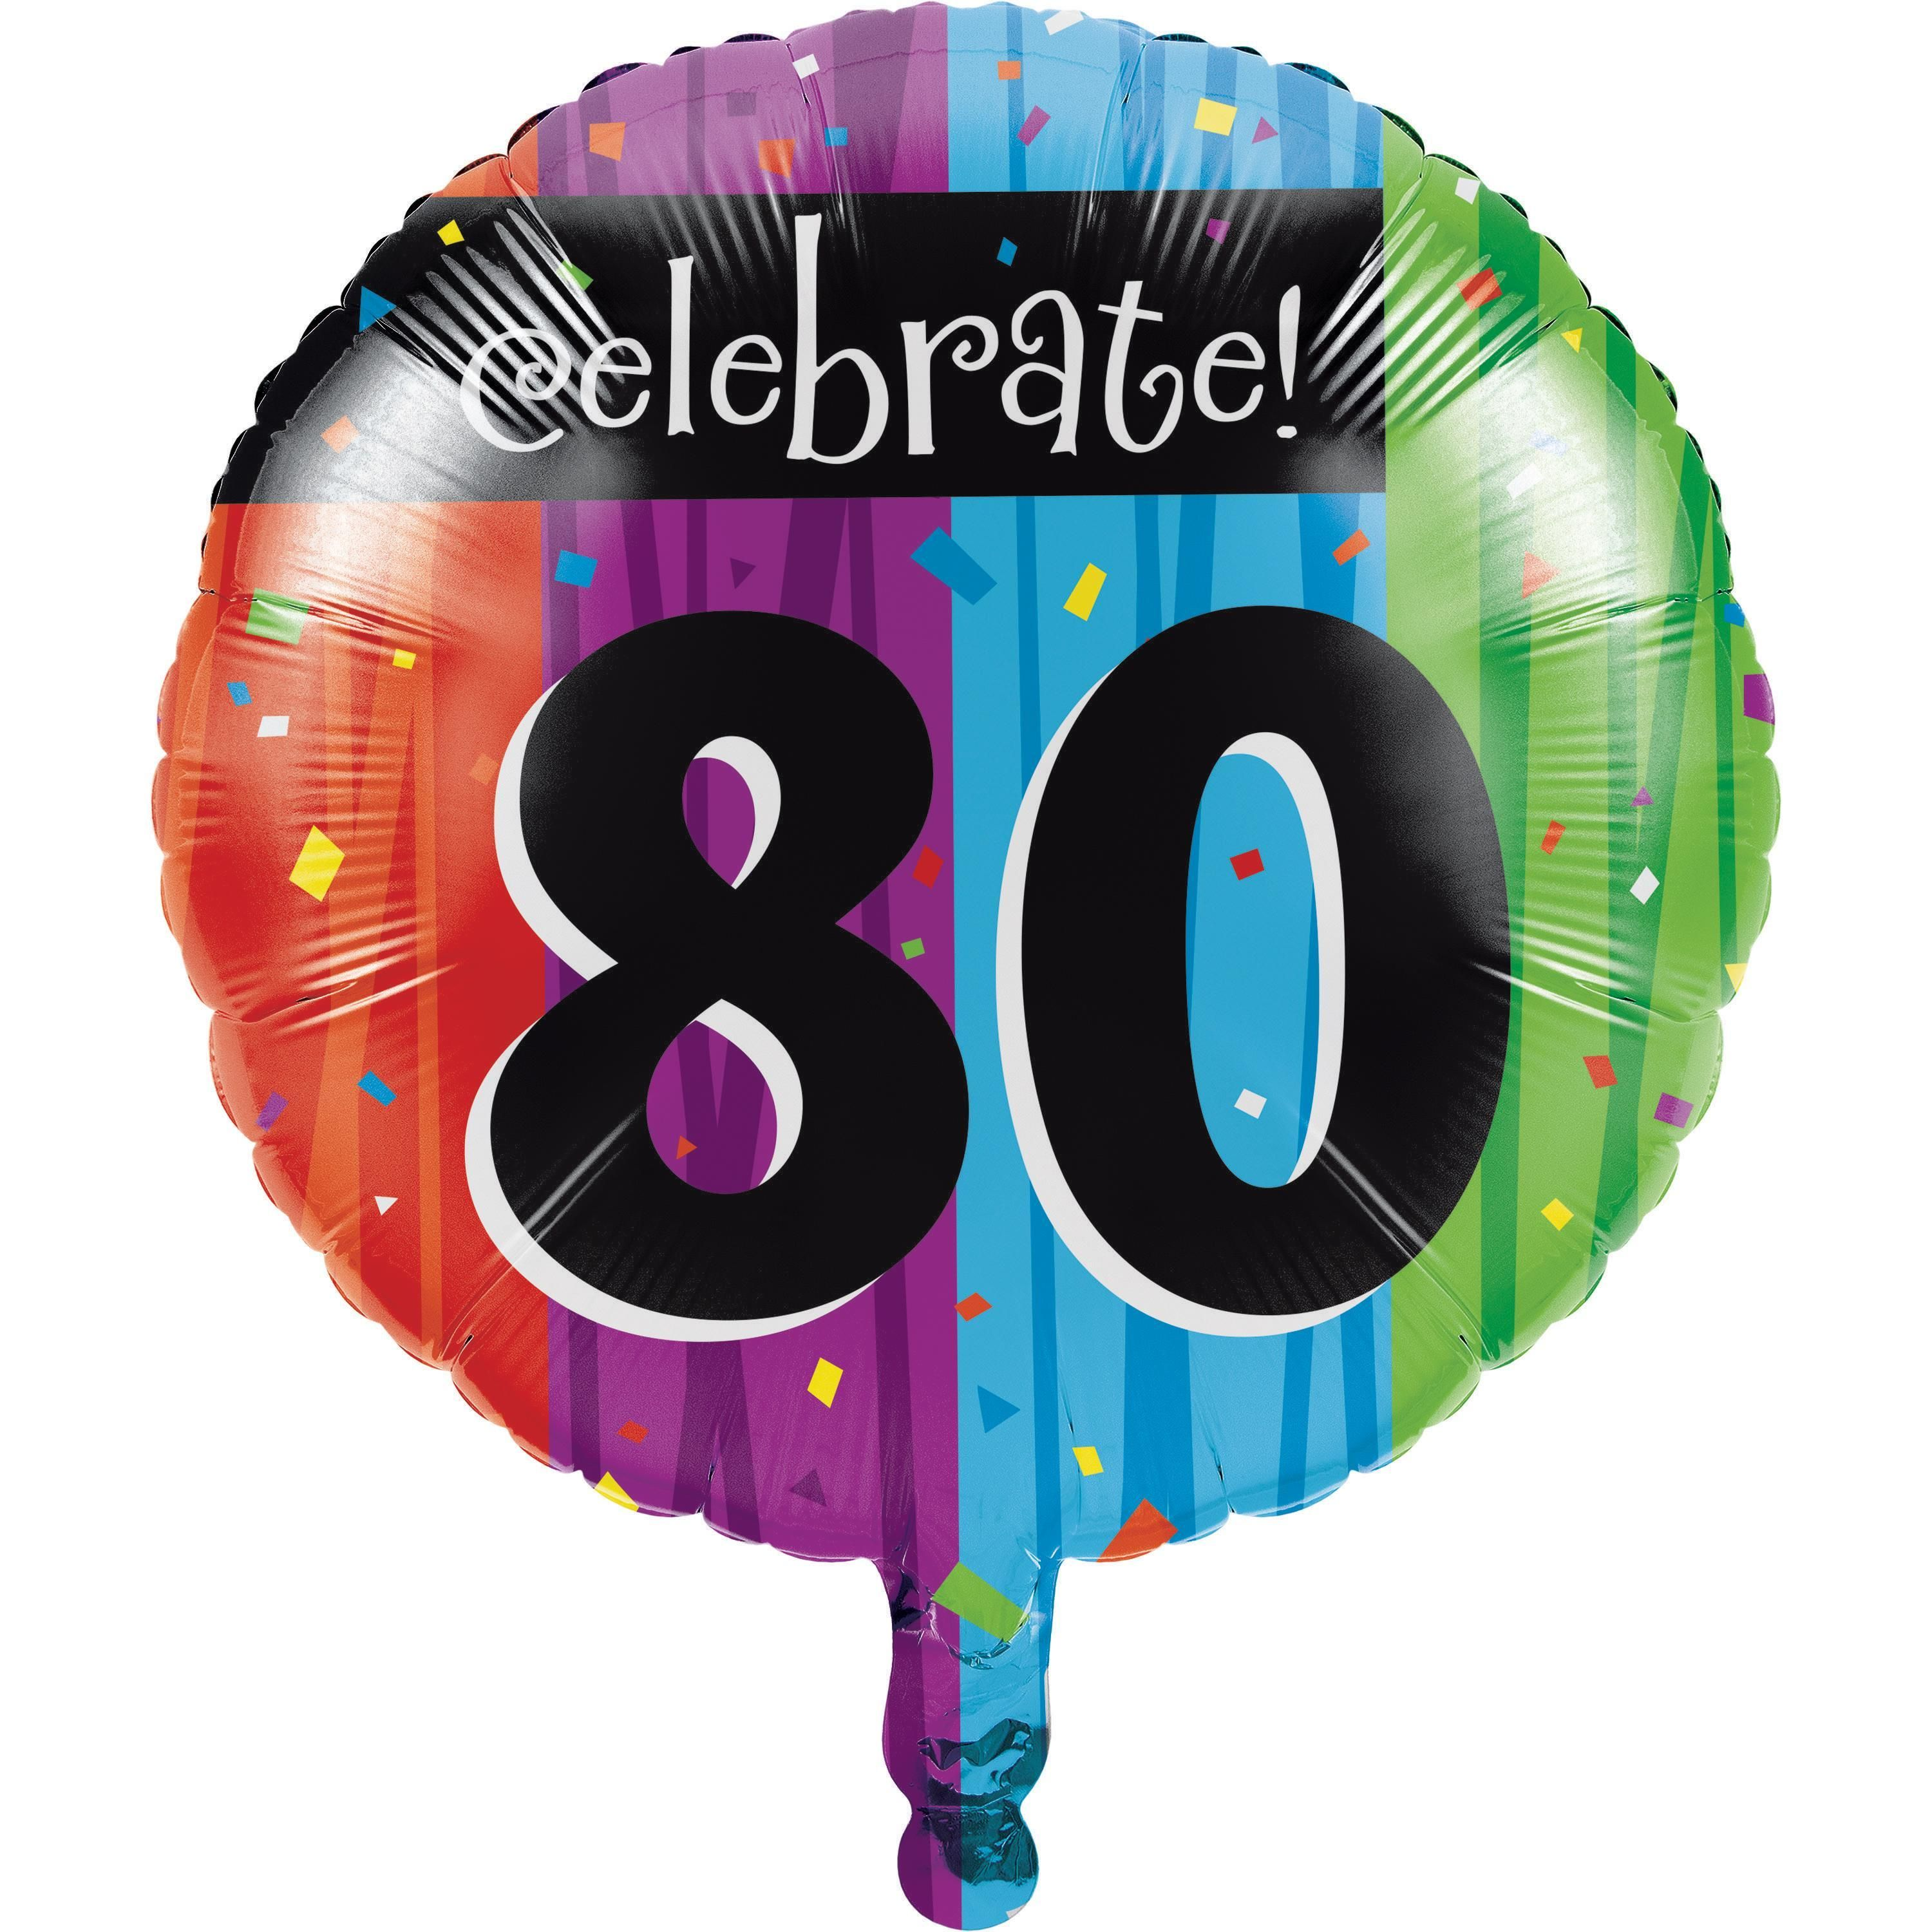 DECORATION AGE 80-80th  BIRTHDAY TABLE CENTREPIECE FOIL BALLOON DISPLAY